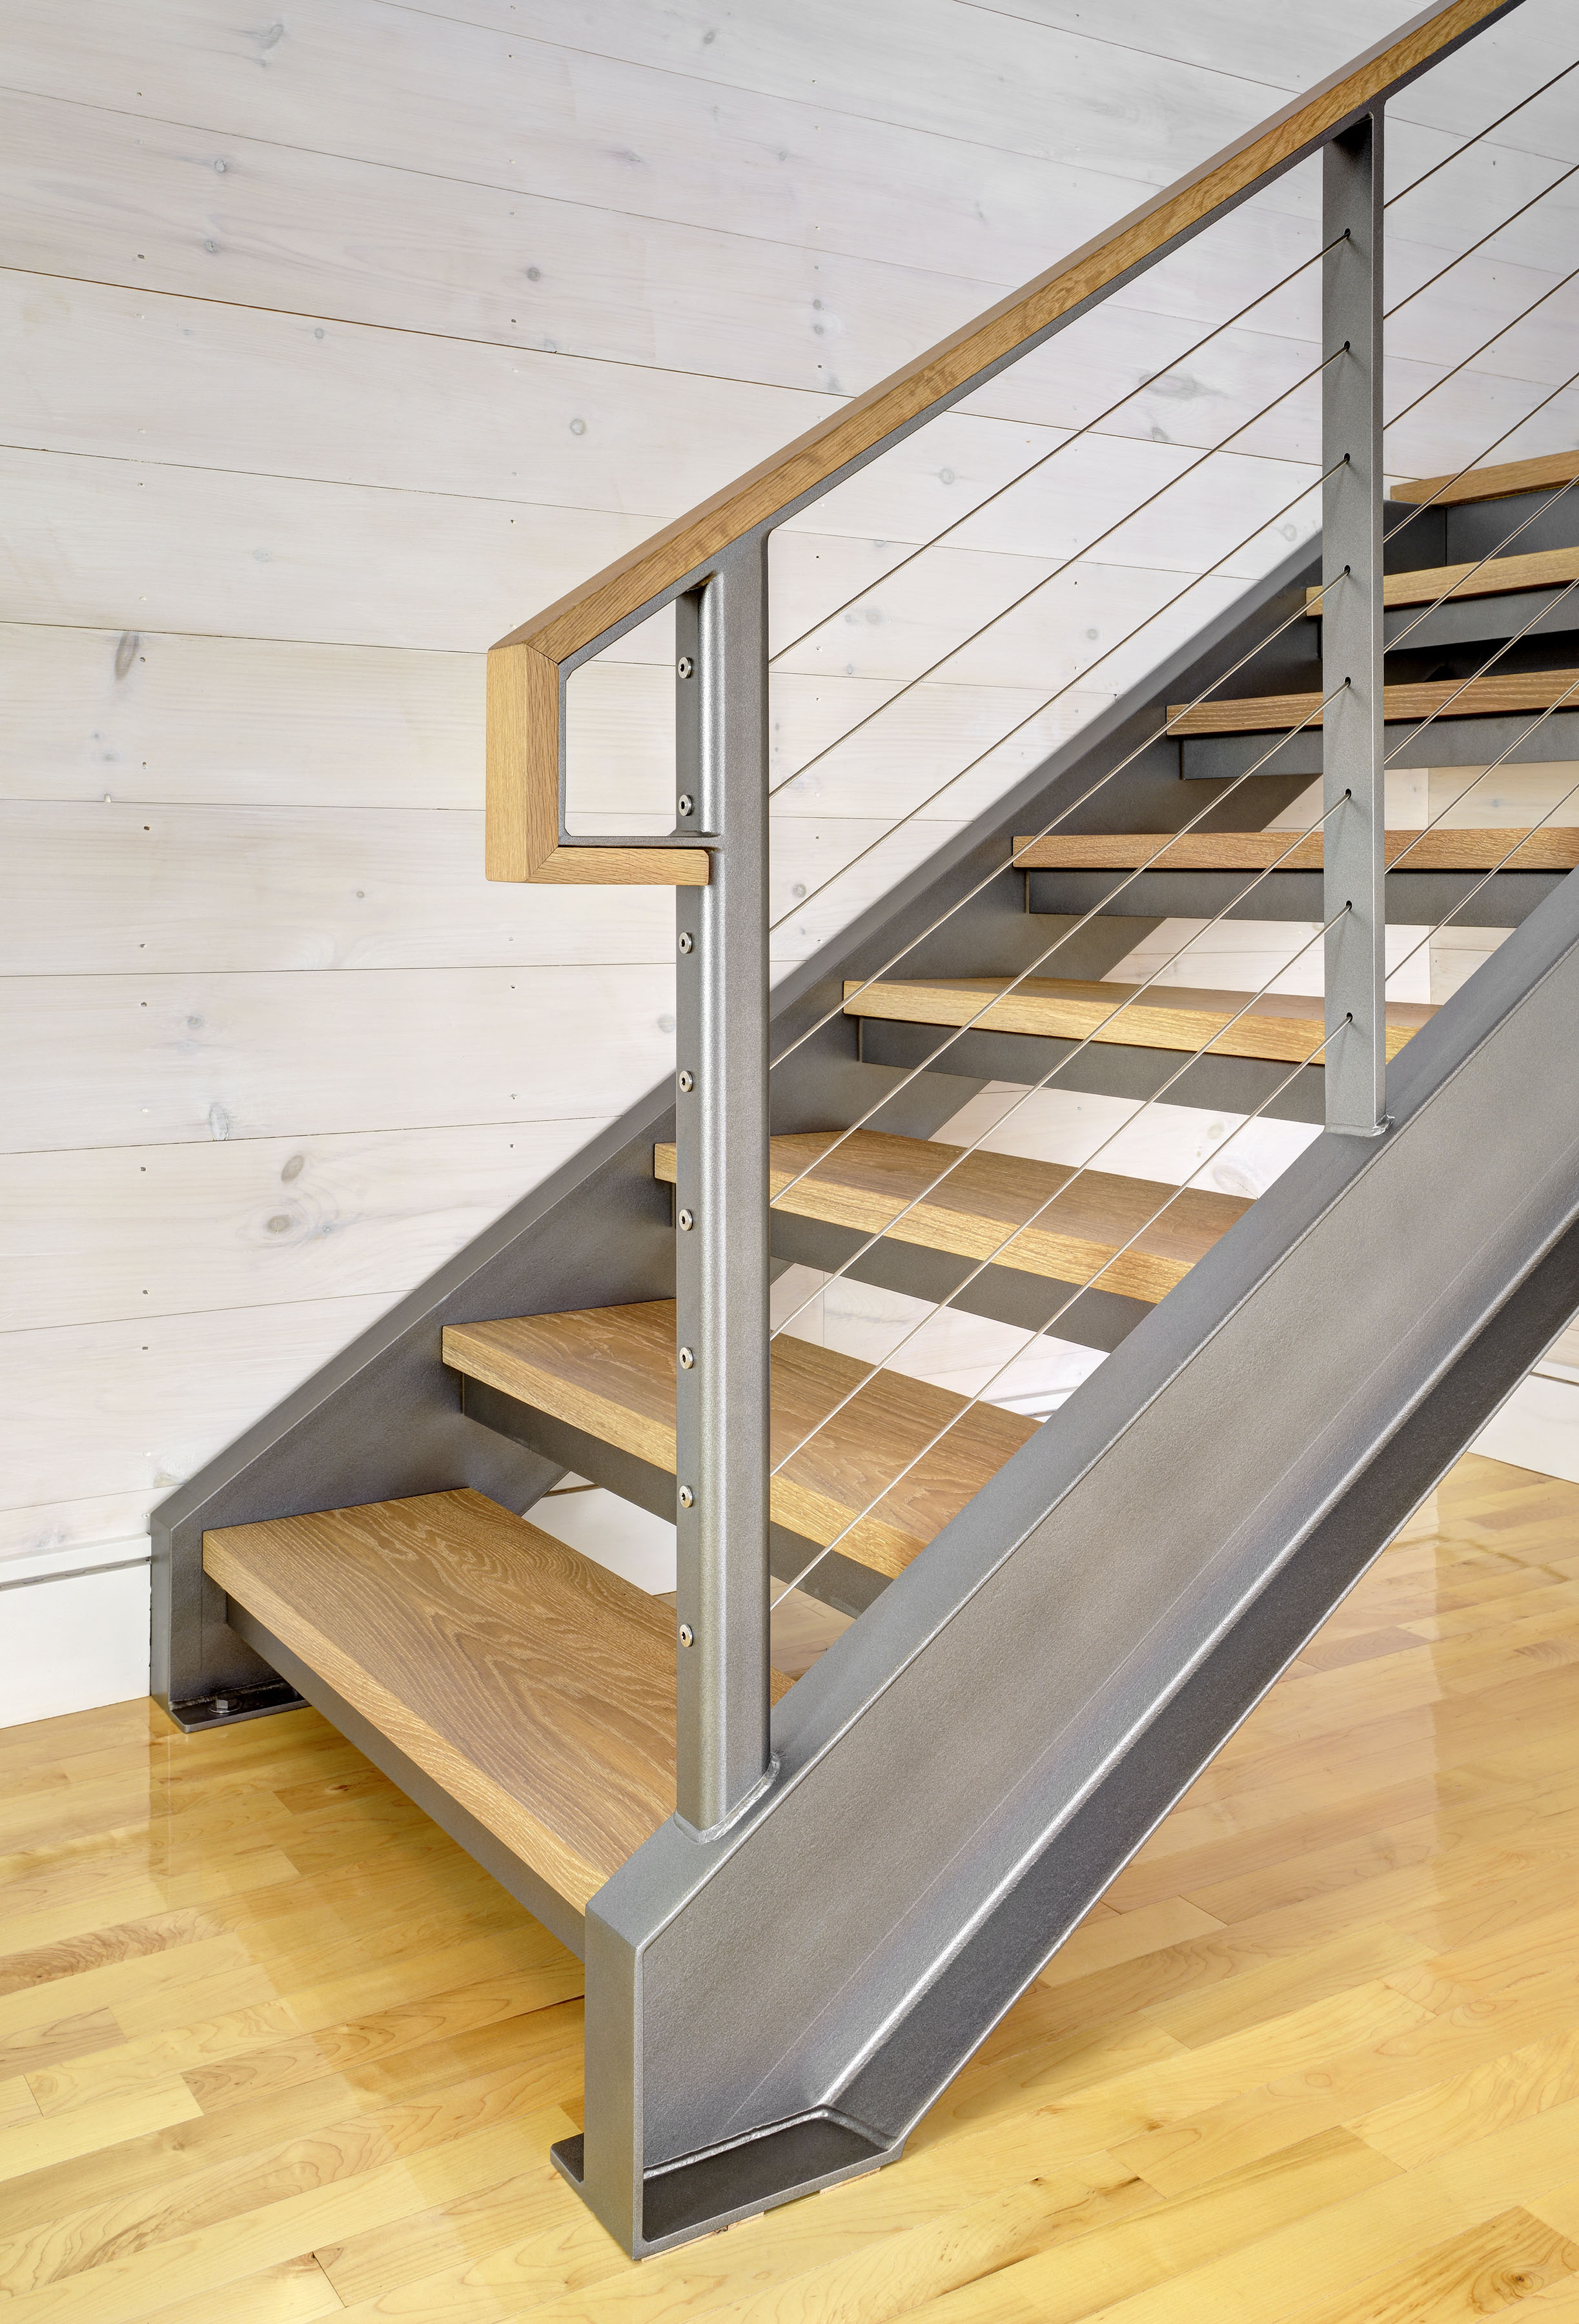 Steel channel stringers staircase with cable railing